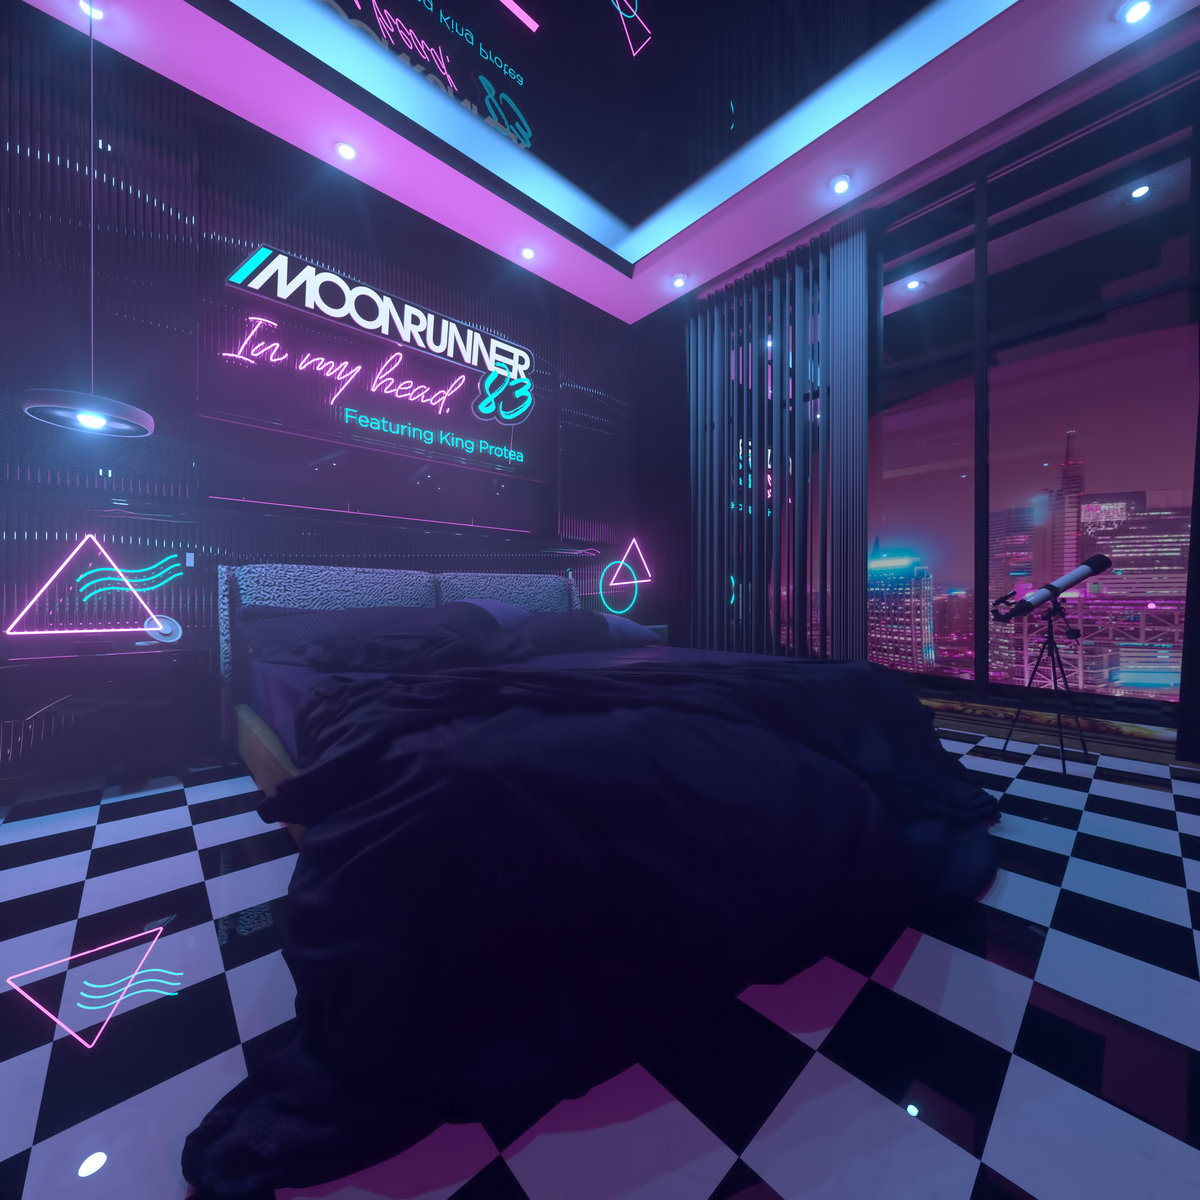 Moonrunner83 - In My Head (feat. King Protea) [Single] Image